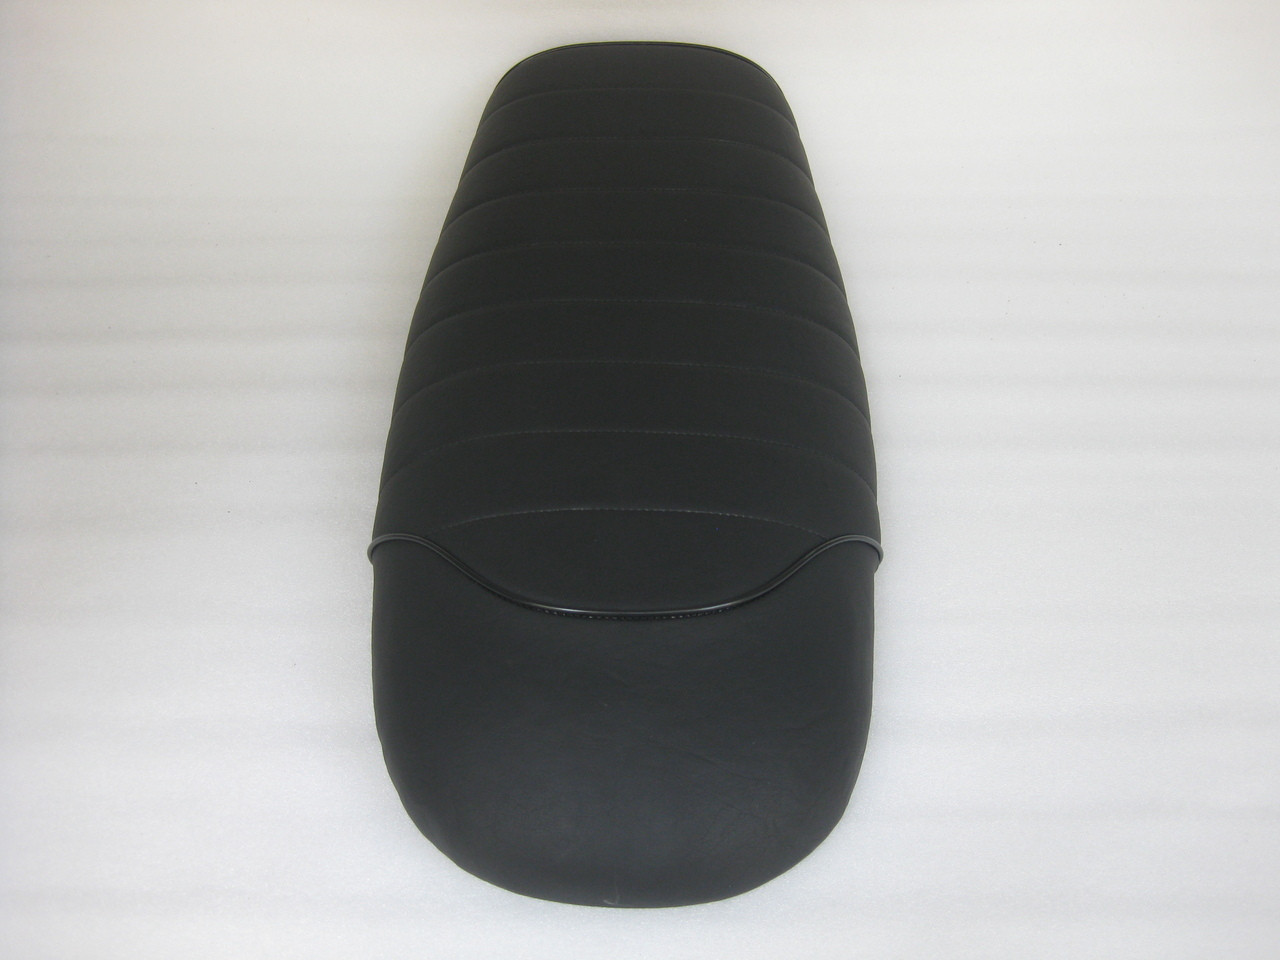 1979 - 1980 Kawasaki KZ650 KZ Cafe Racer Complete Motorcycle Seat with Modified Seat Pan #4265